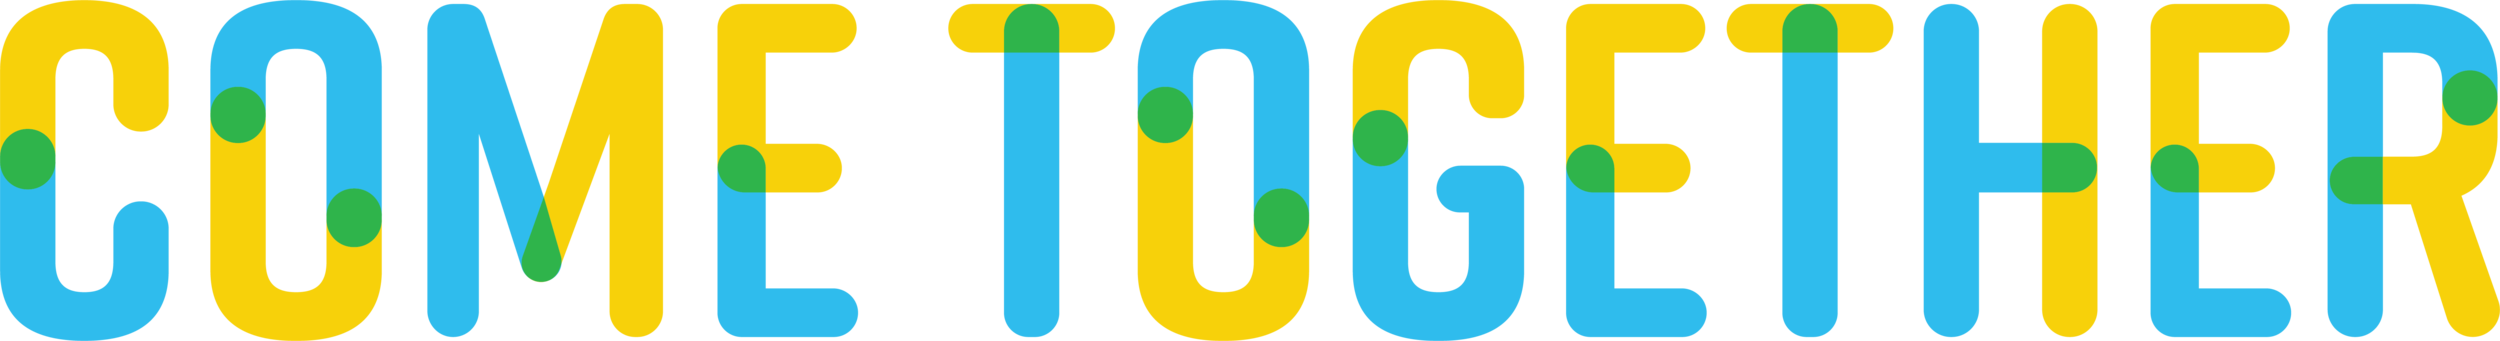 Come Together logo.png